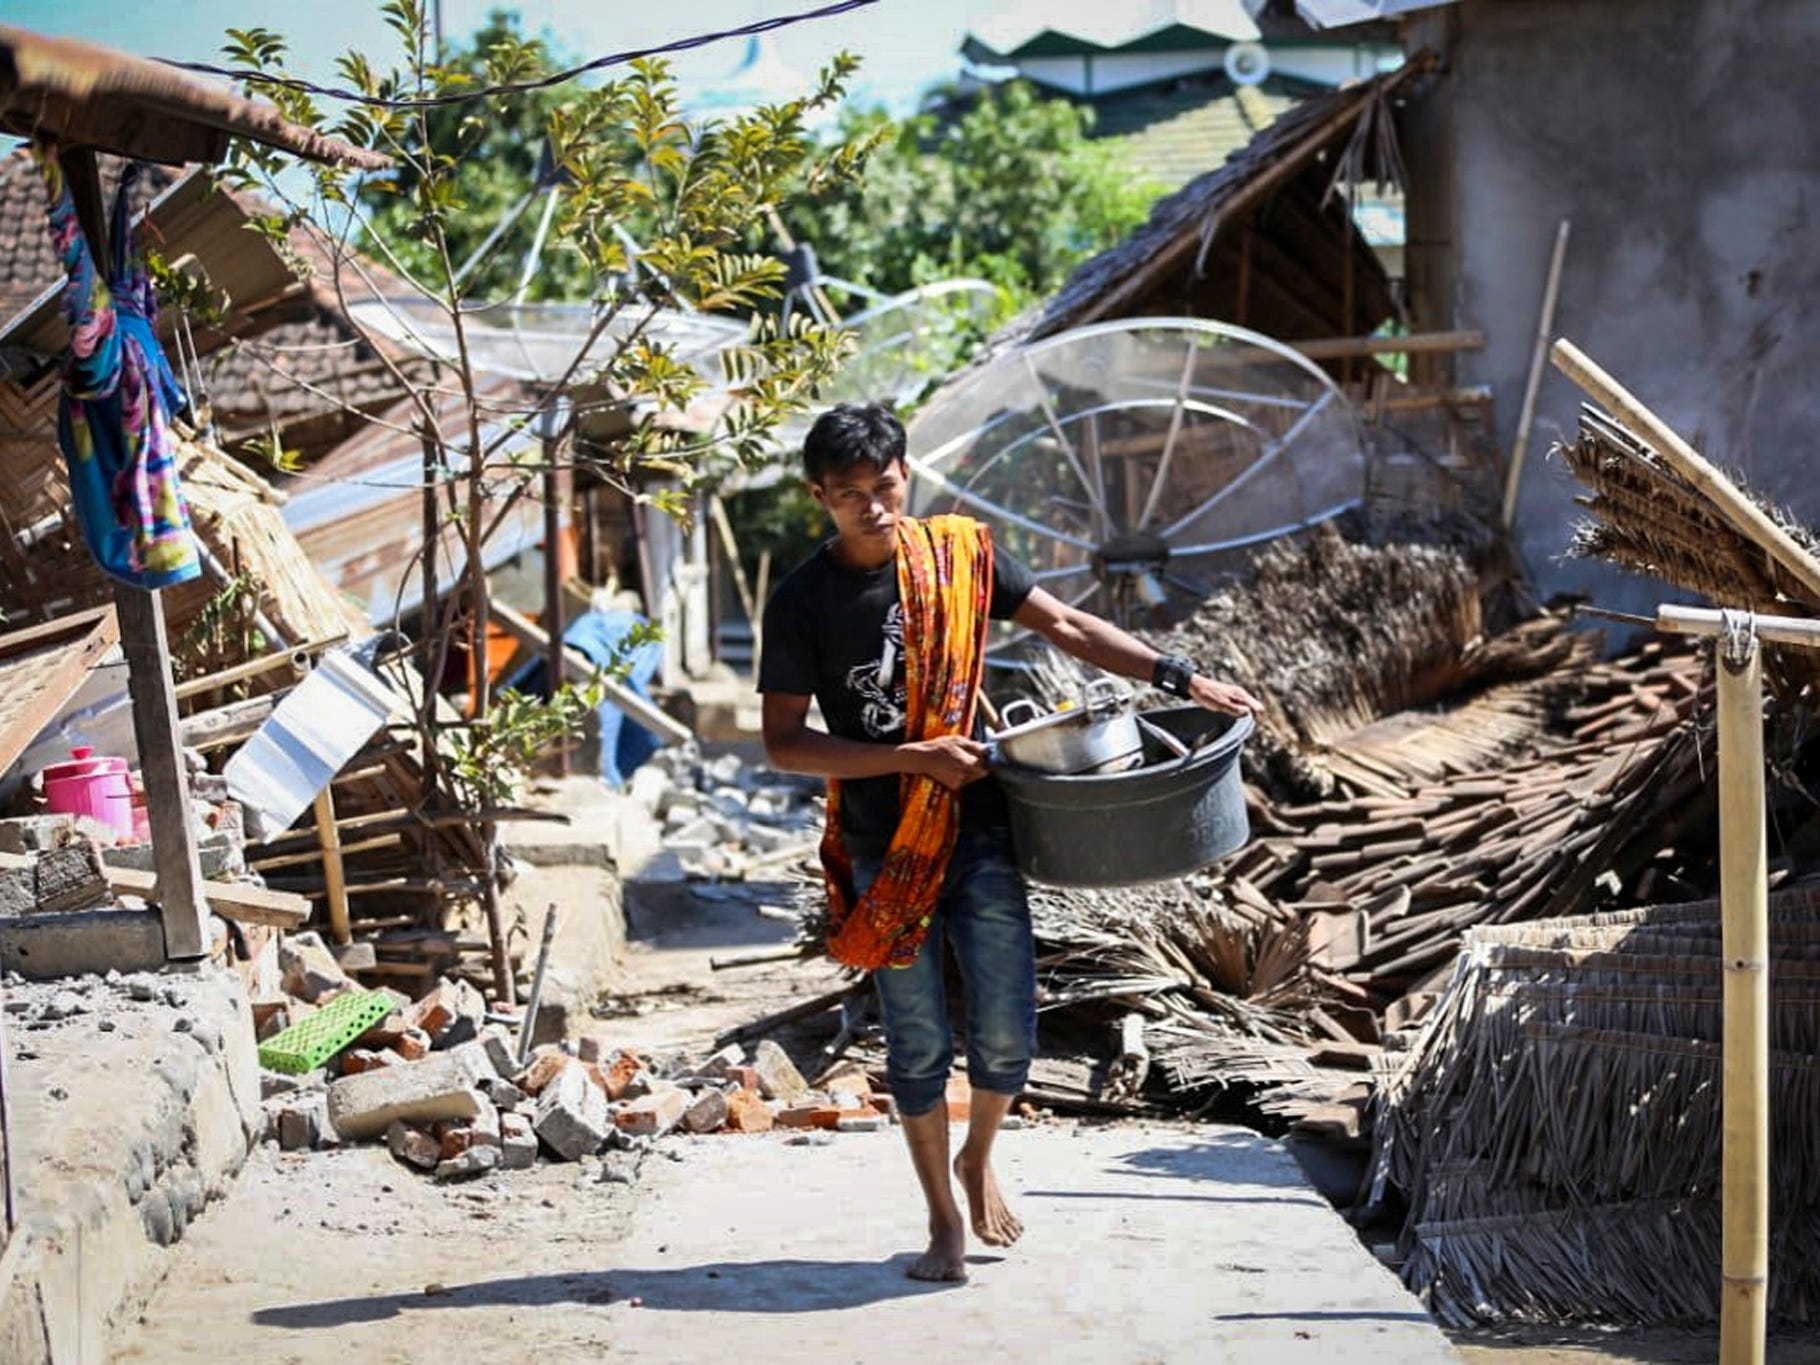 An Indonesian man collects his belongings from his collapsed house after an earthquake struck in North Lombok, West Nusa Tenggara, Indonesia, on Aug. 6, 2018.